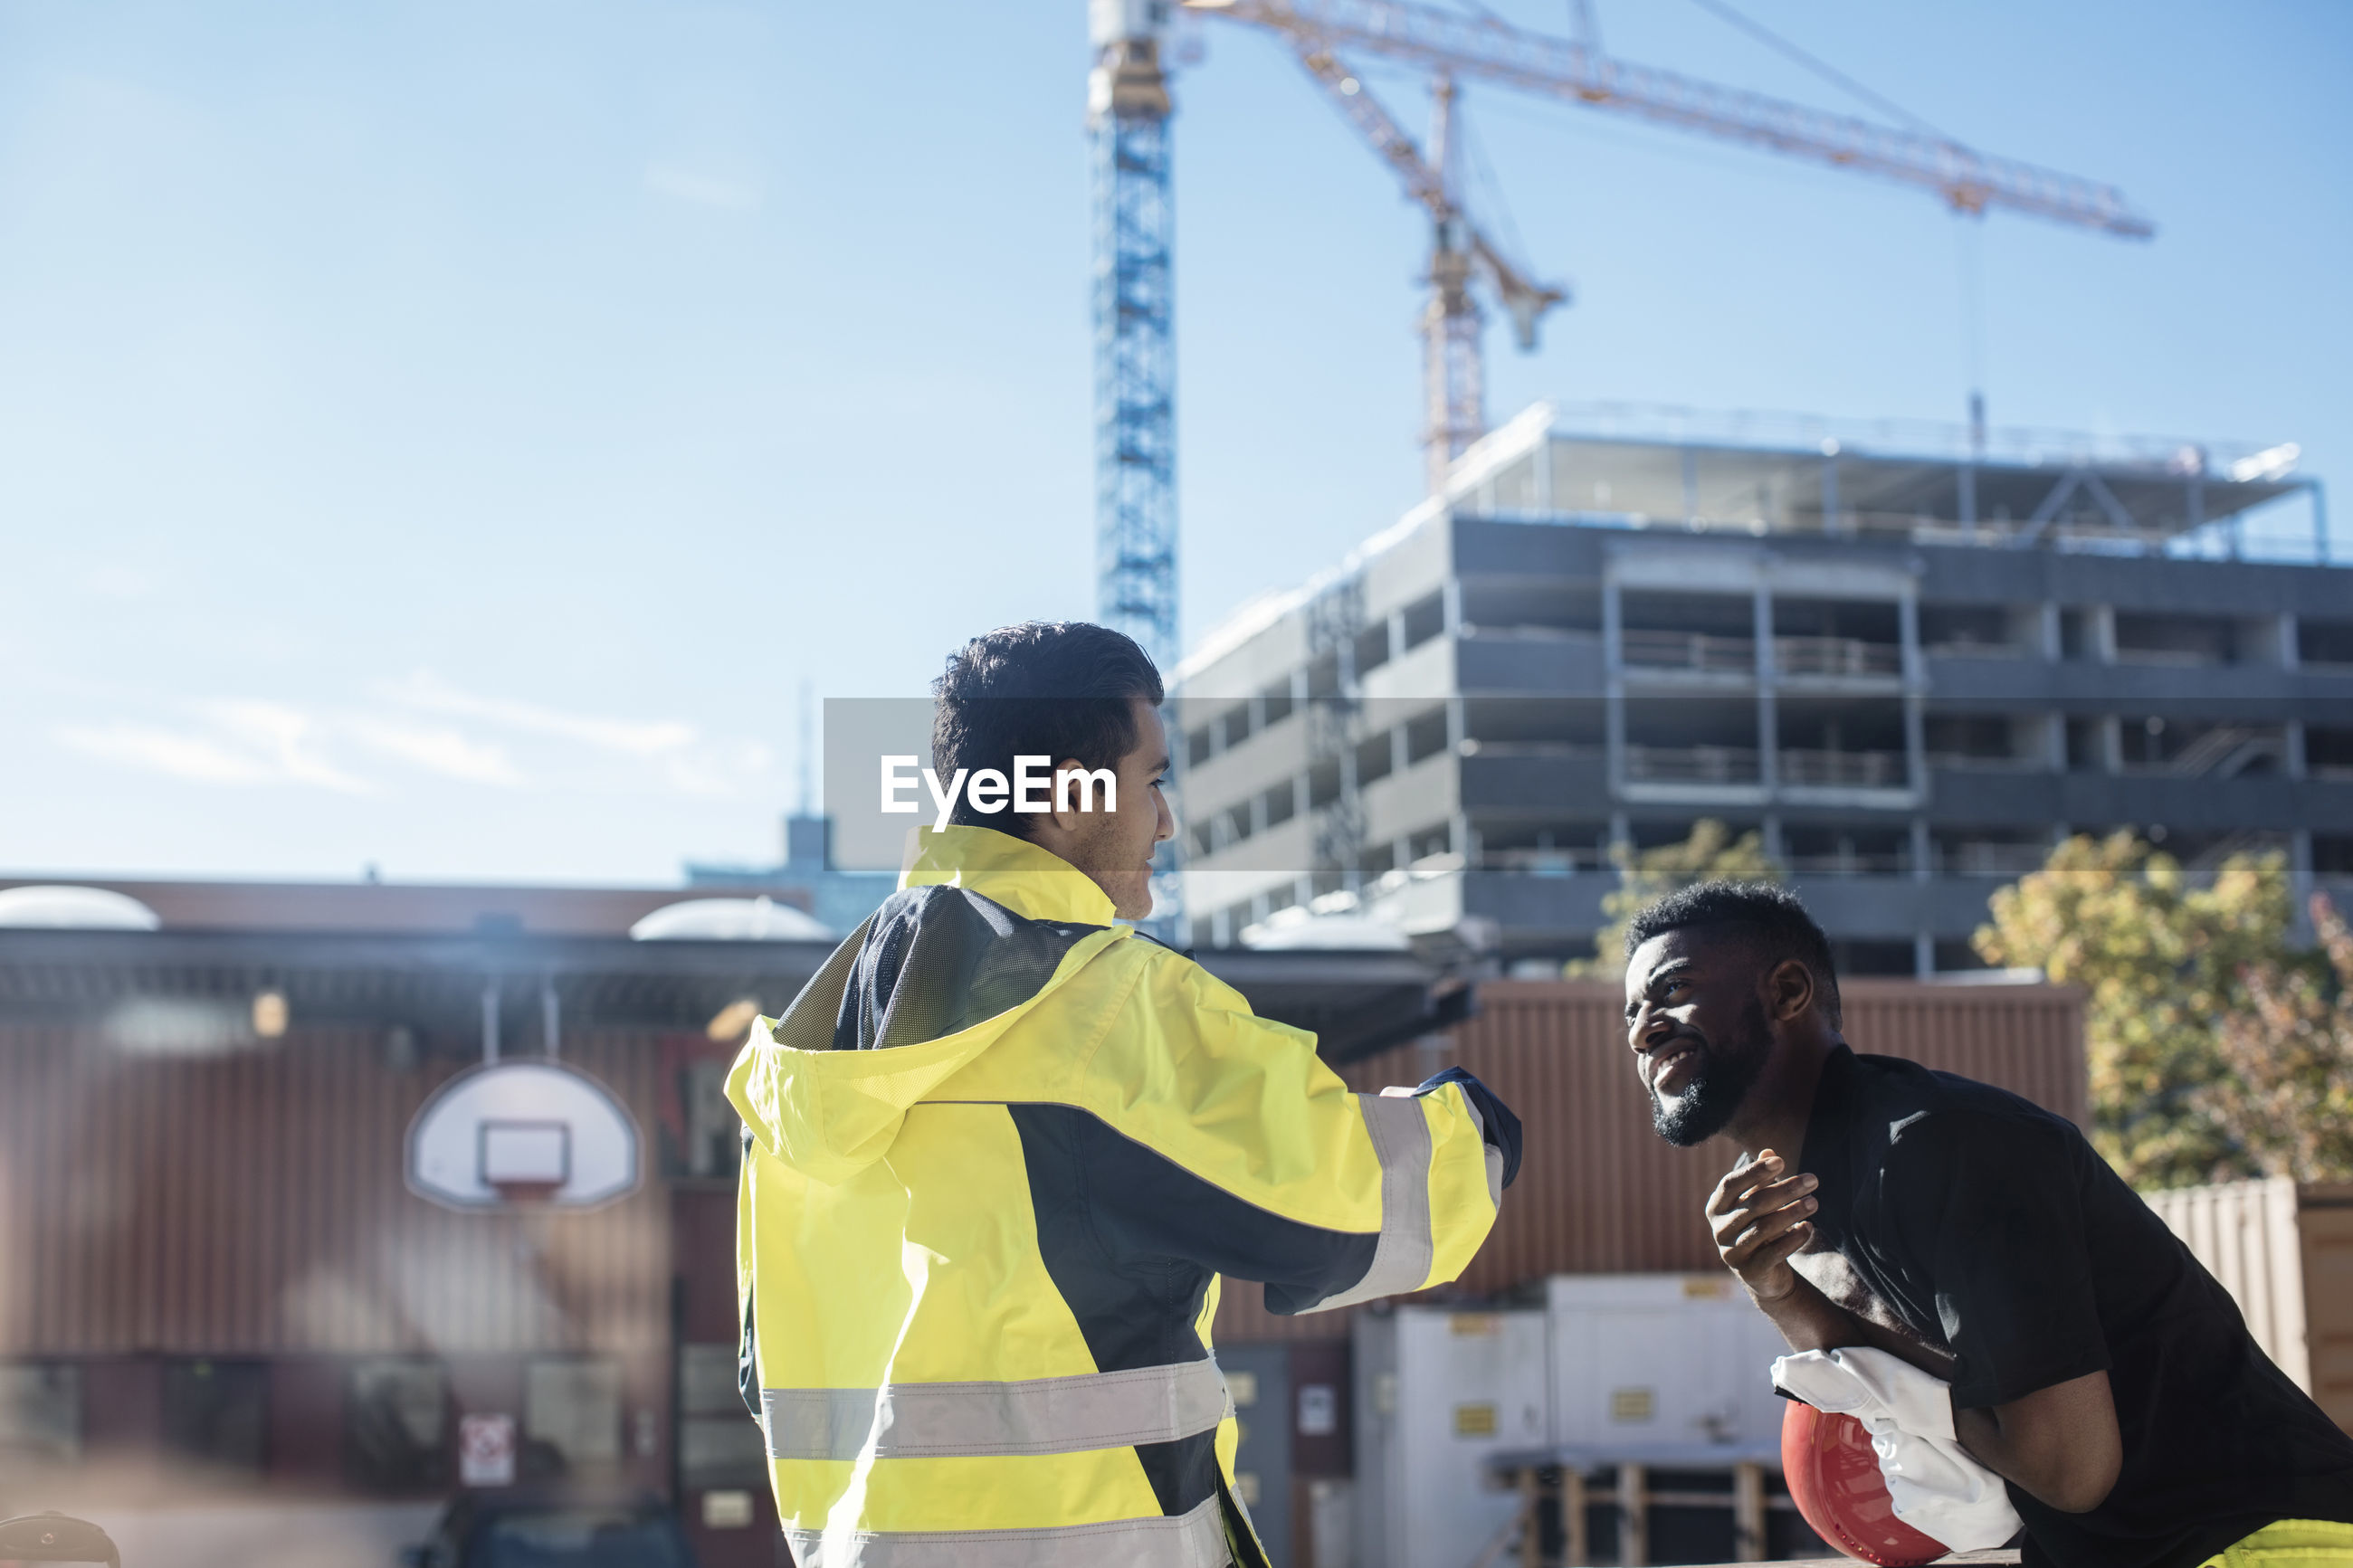 PEOPLE STANDING ON CONSTRUCTION SITE AGAINST SKY